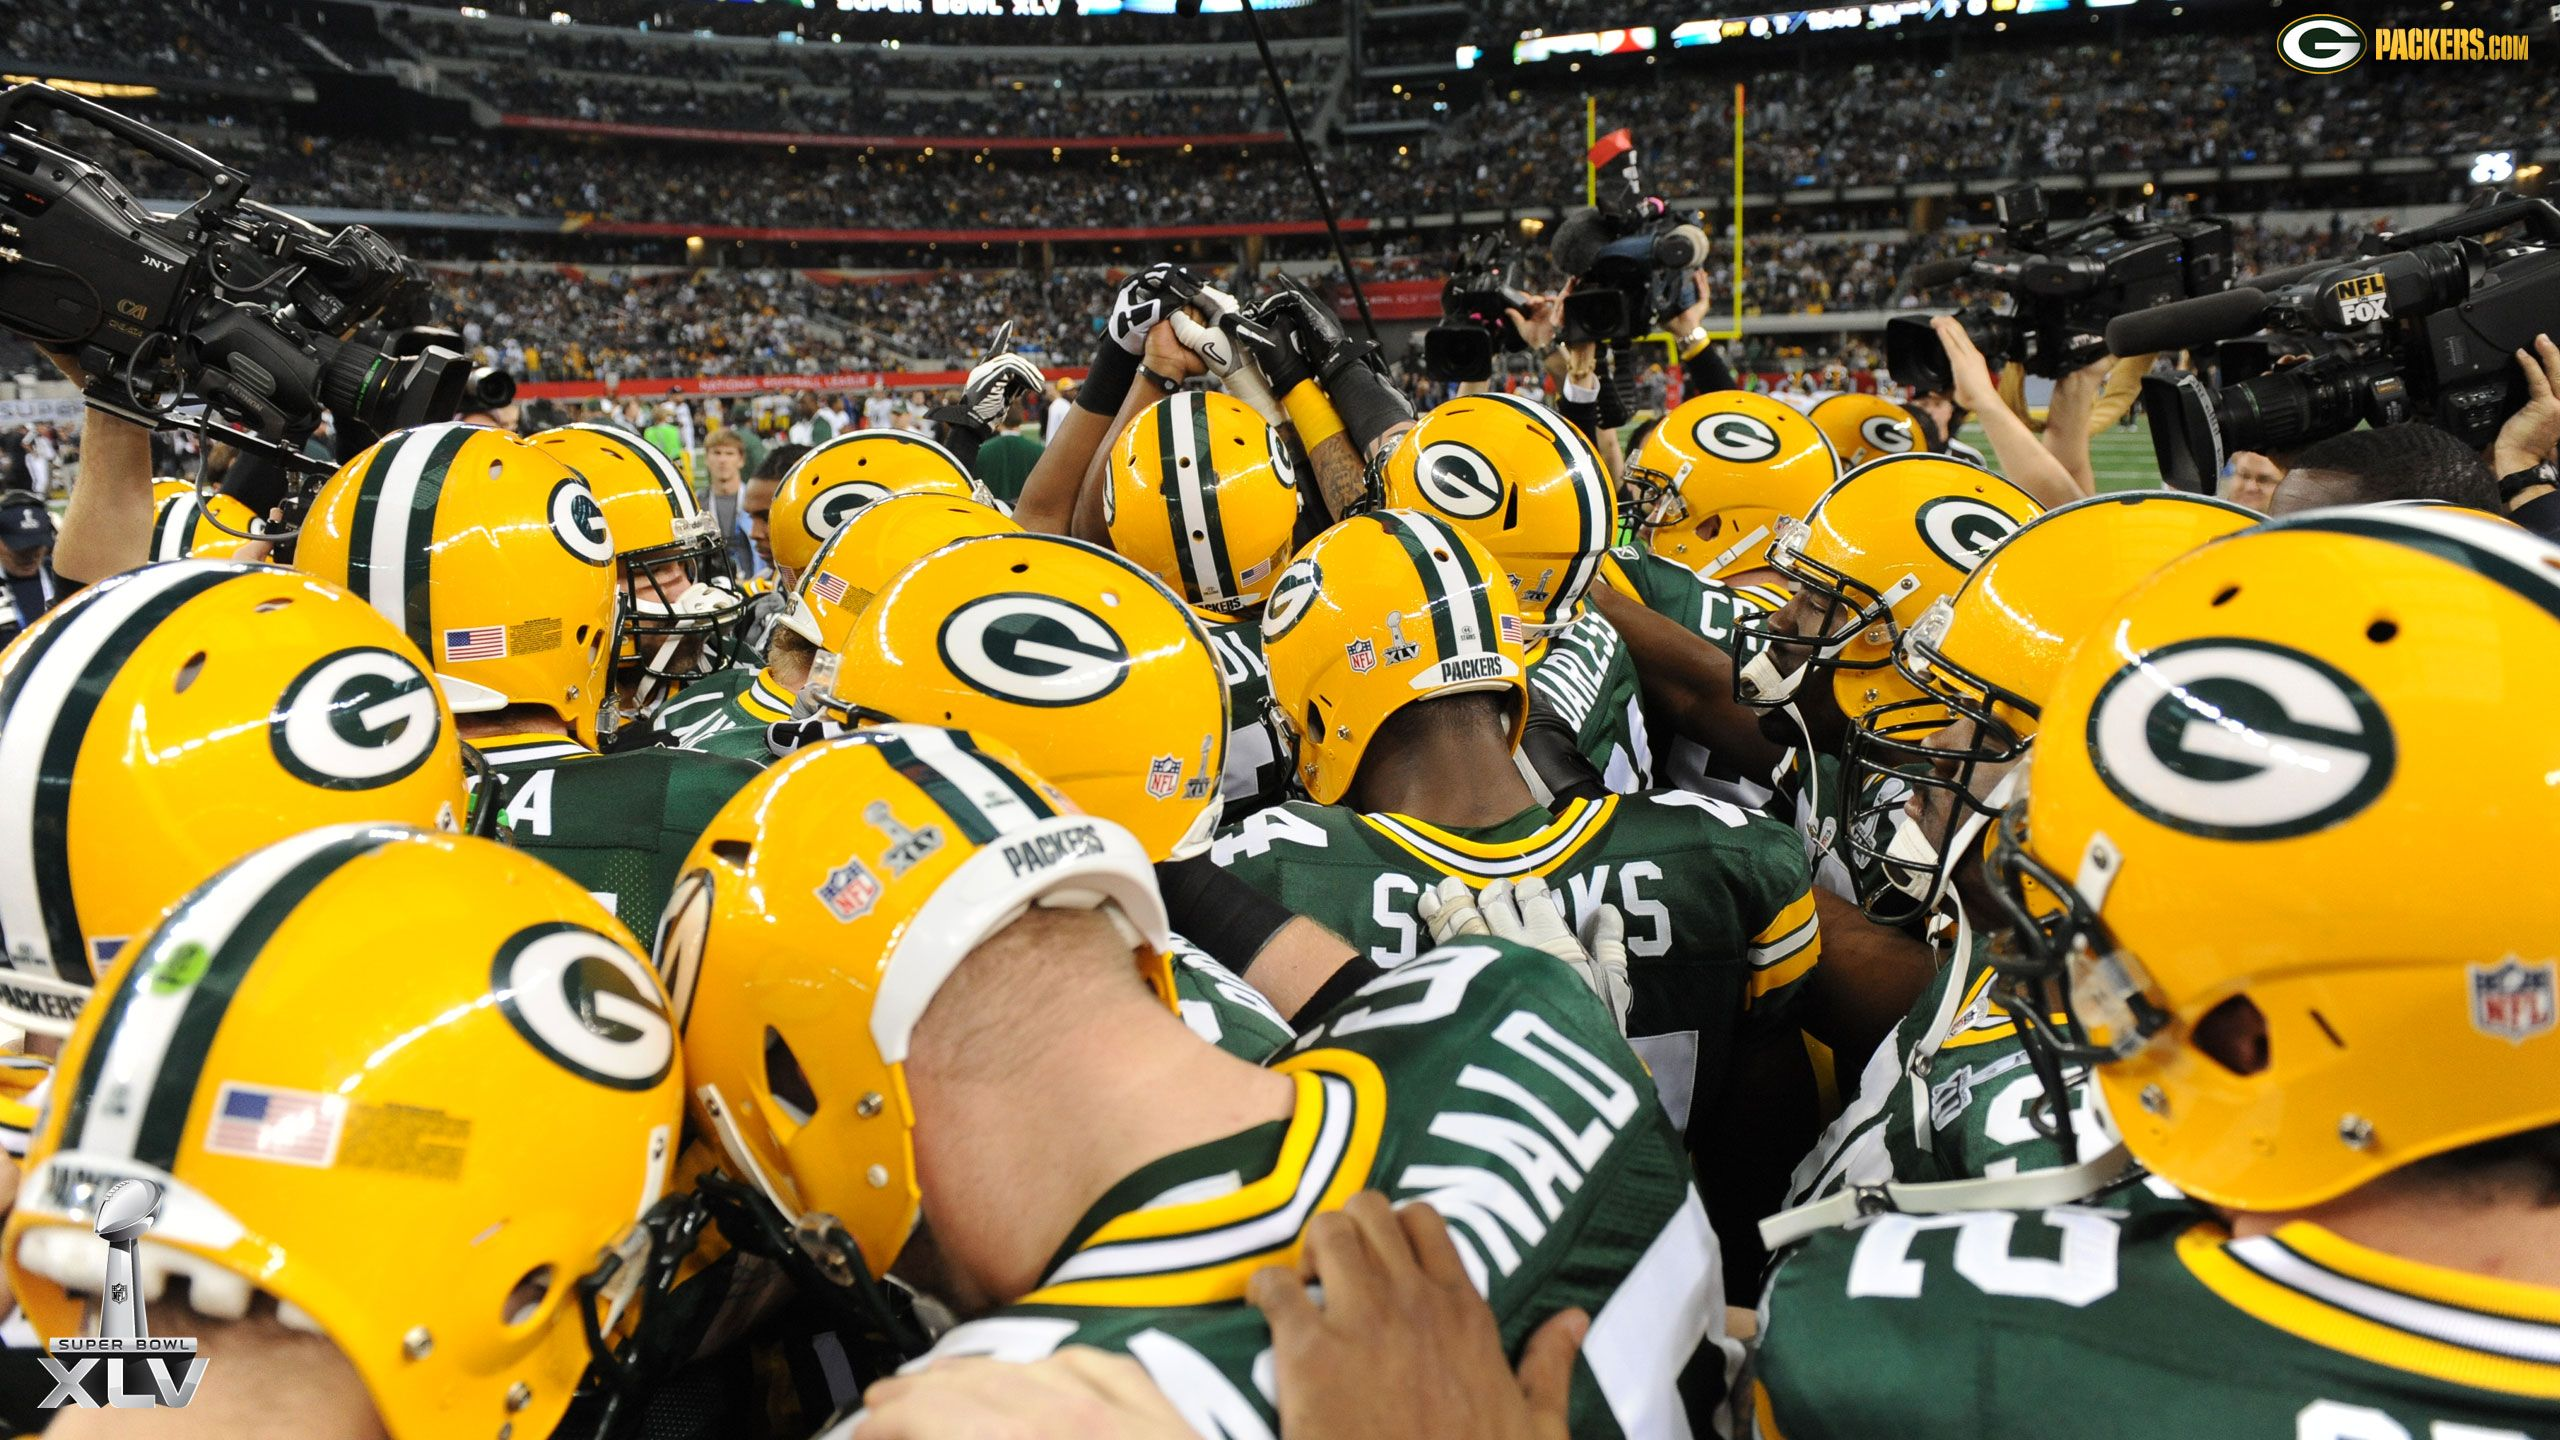 Packers Wallpaper Collection For Free Download | HD ...